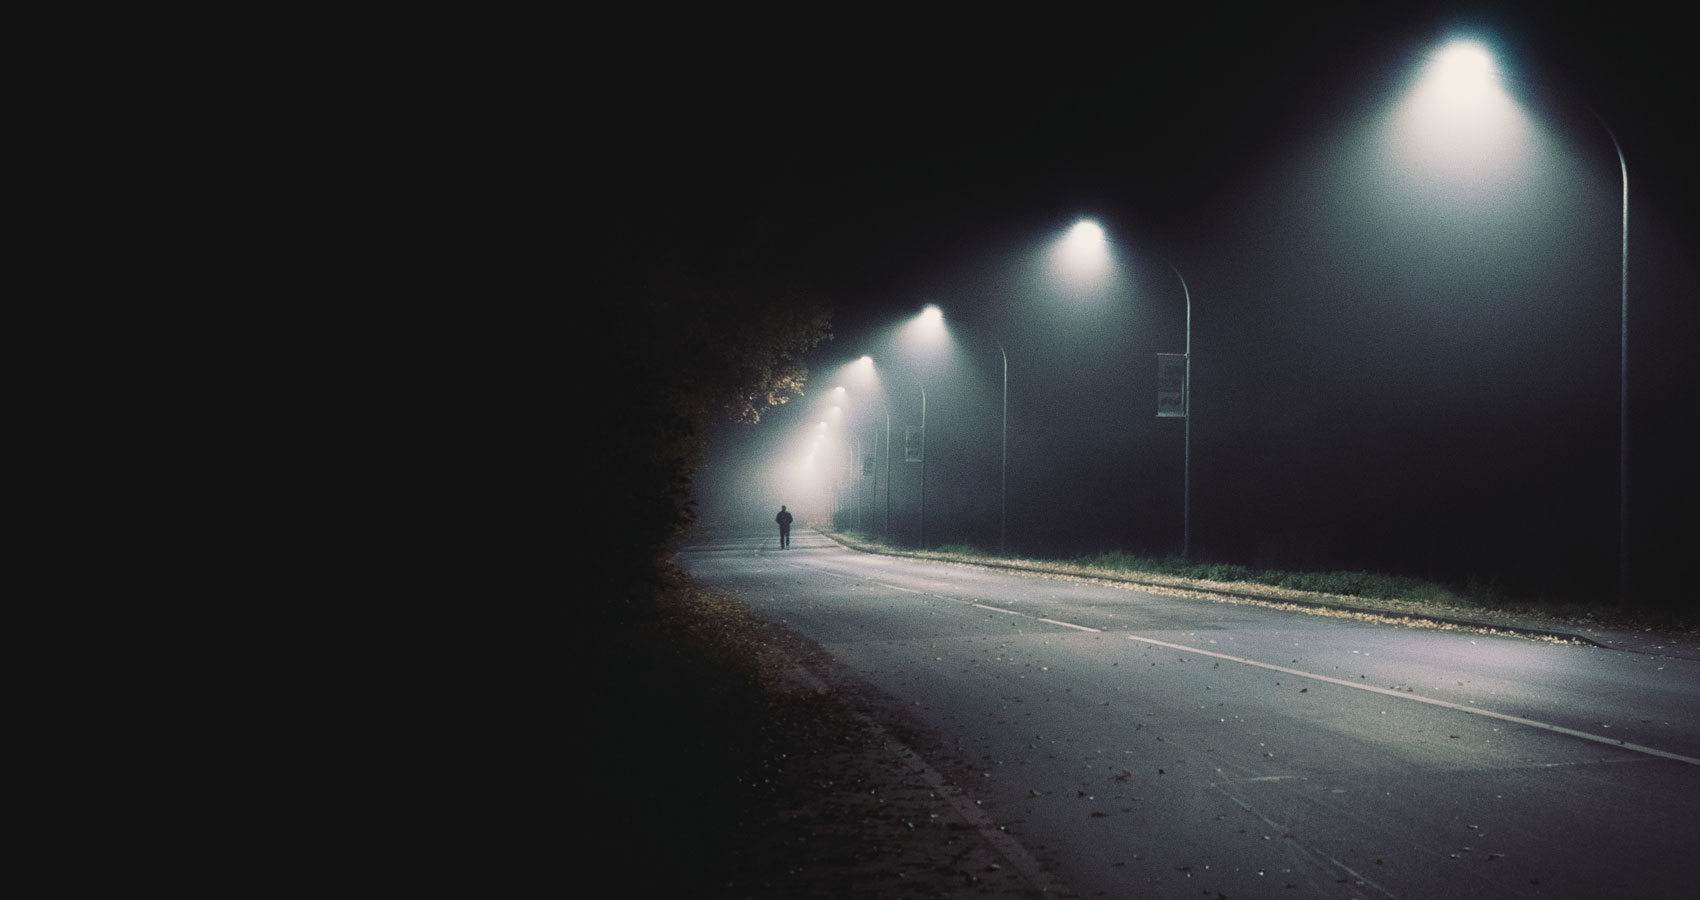 Walked To Death, poetry written by Ash Douglas at Spillwords.com